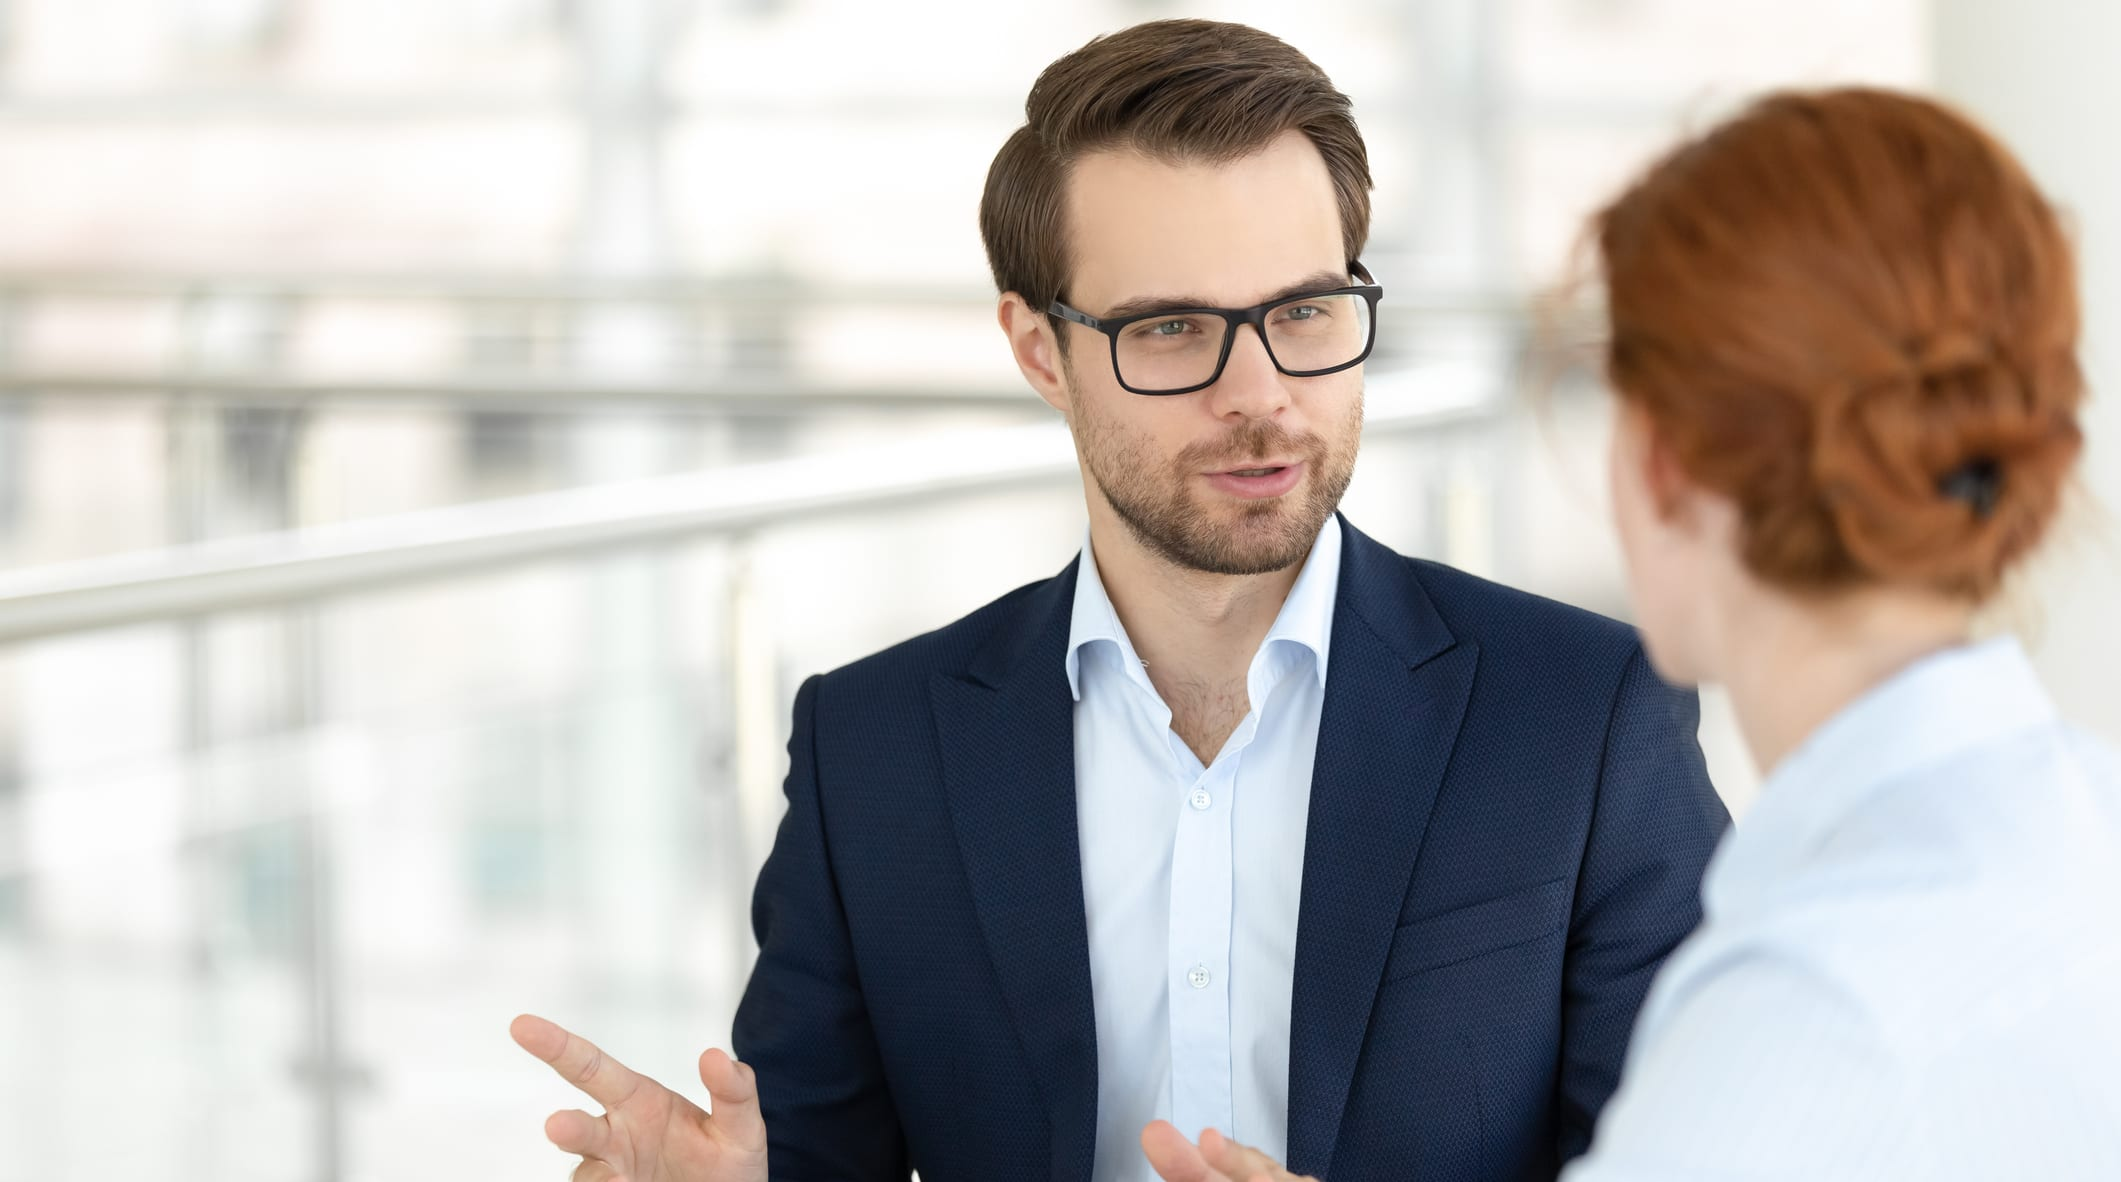 Salesperson asking probing questions to prospect